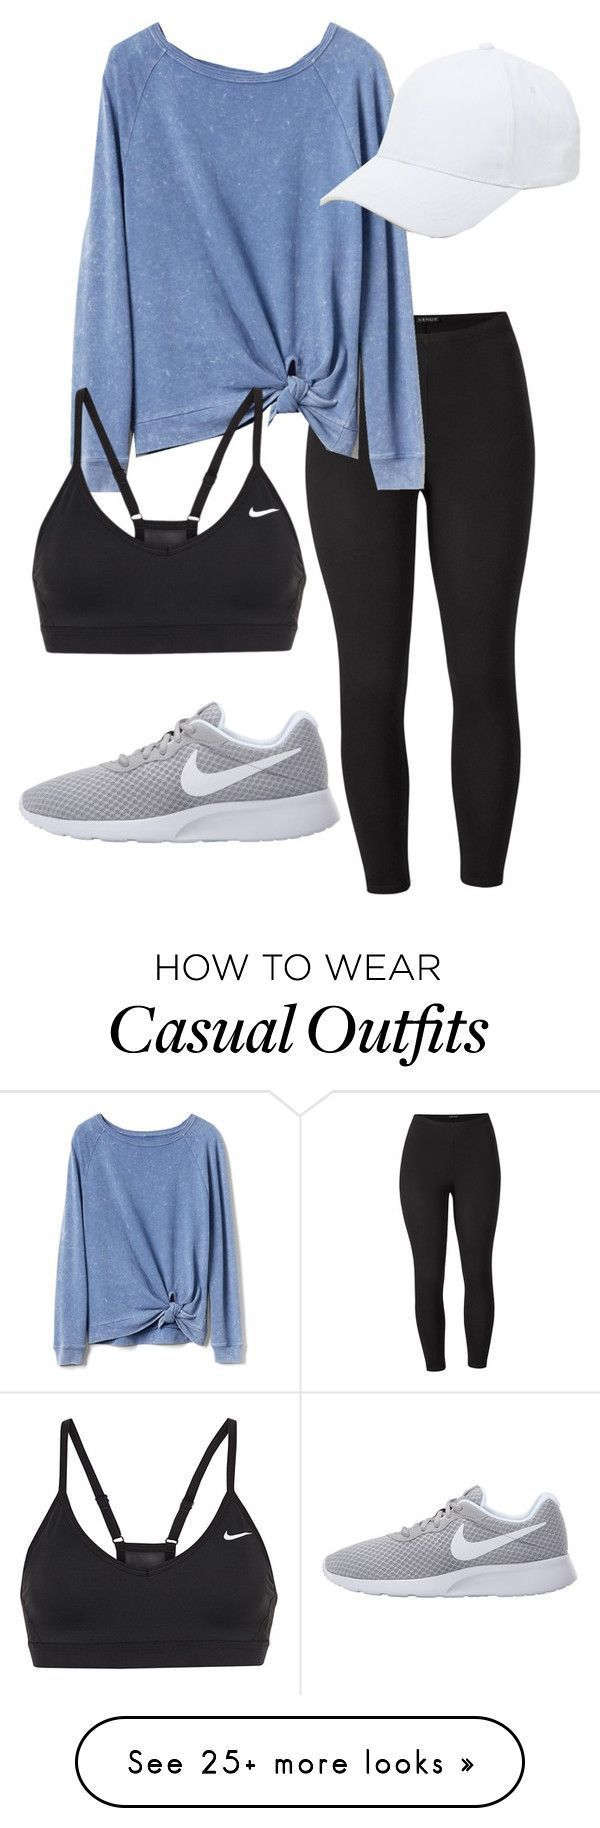 """Everyday Casual look ??"" by smhowie on Polyvore featuring Venus, Gap, NIKE, Sole Society and plus size clothing (Fitness Clothes Outfits)"